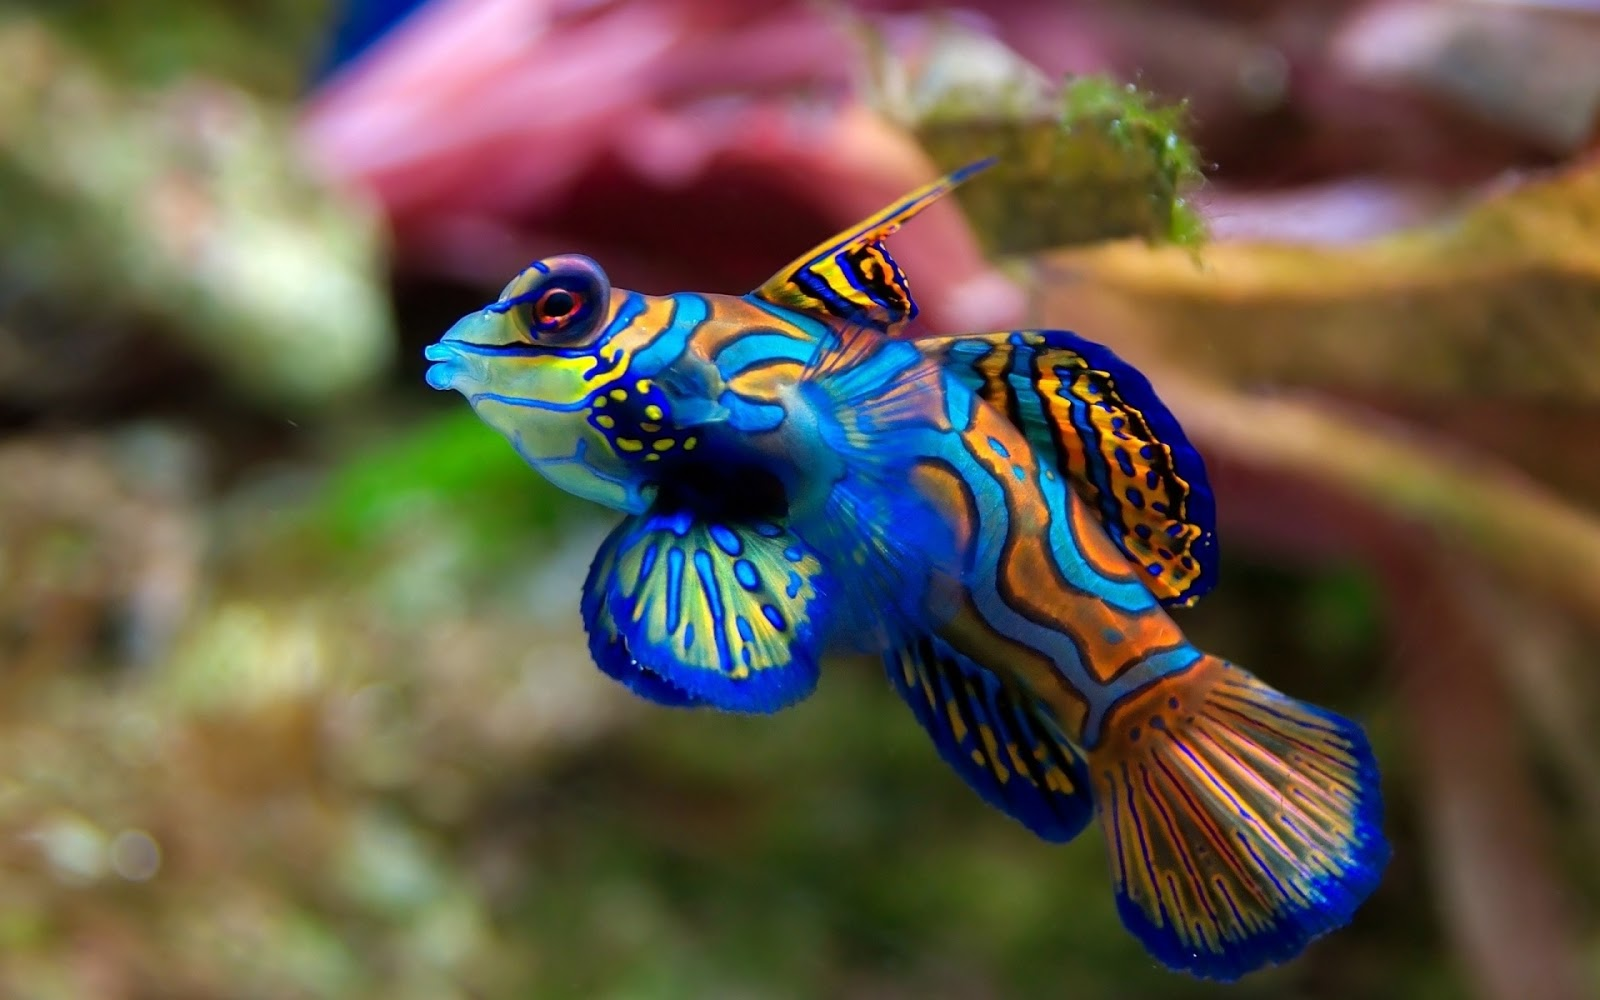 http://2.bp.blogspot.com/-aRClrUOGMnc/UTTRv5ReaTI/AAAAAAAADpM/0GvjPyy_DEc/s1600/Exotic+Fish+Wallpaper+HD+1.jpg